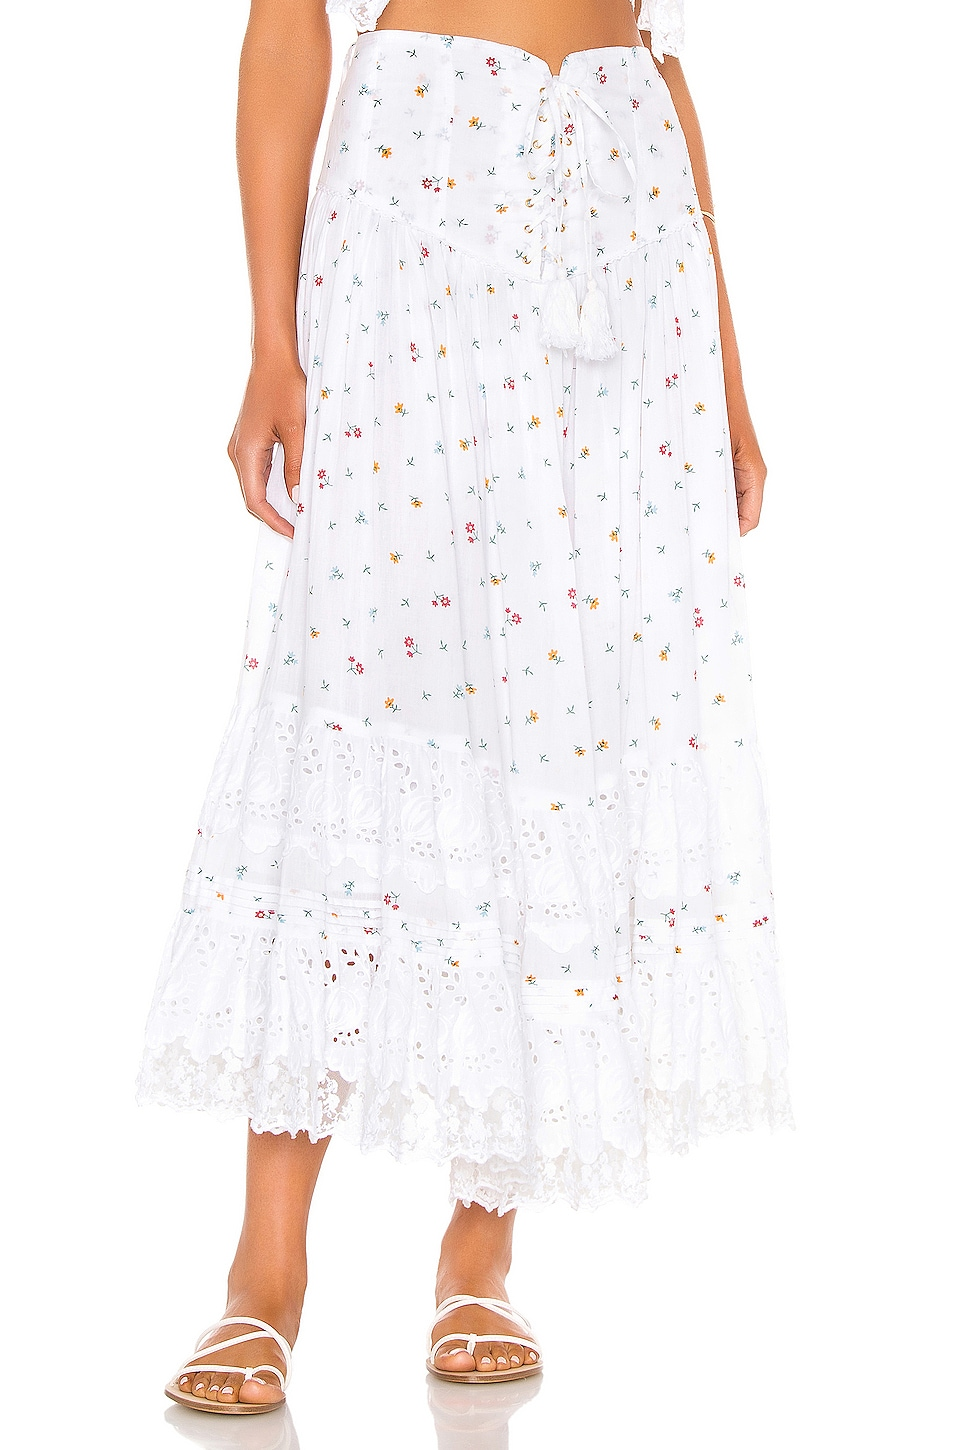 Place Nationale L'Etage Floral Print Tiered Maxi Skirt in Floral Cotton